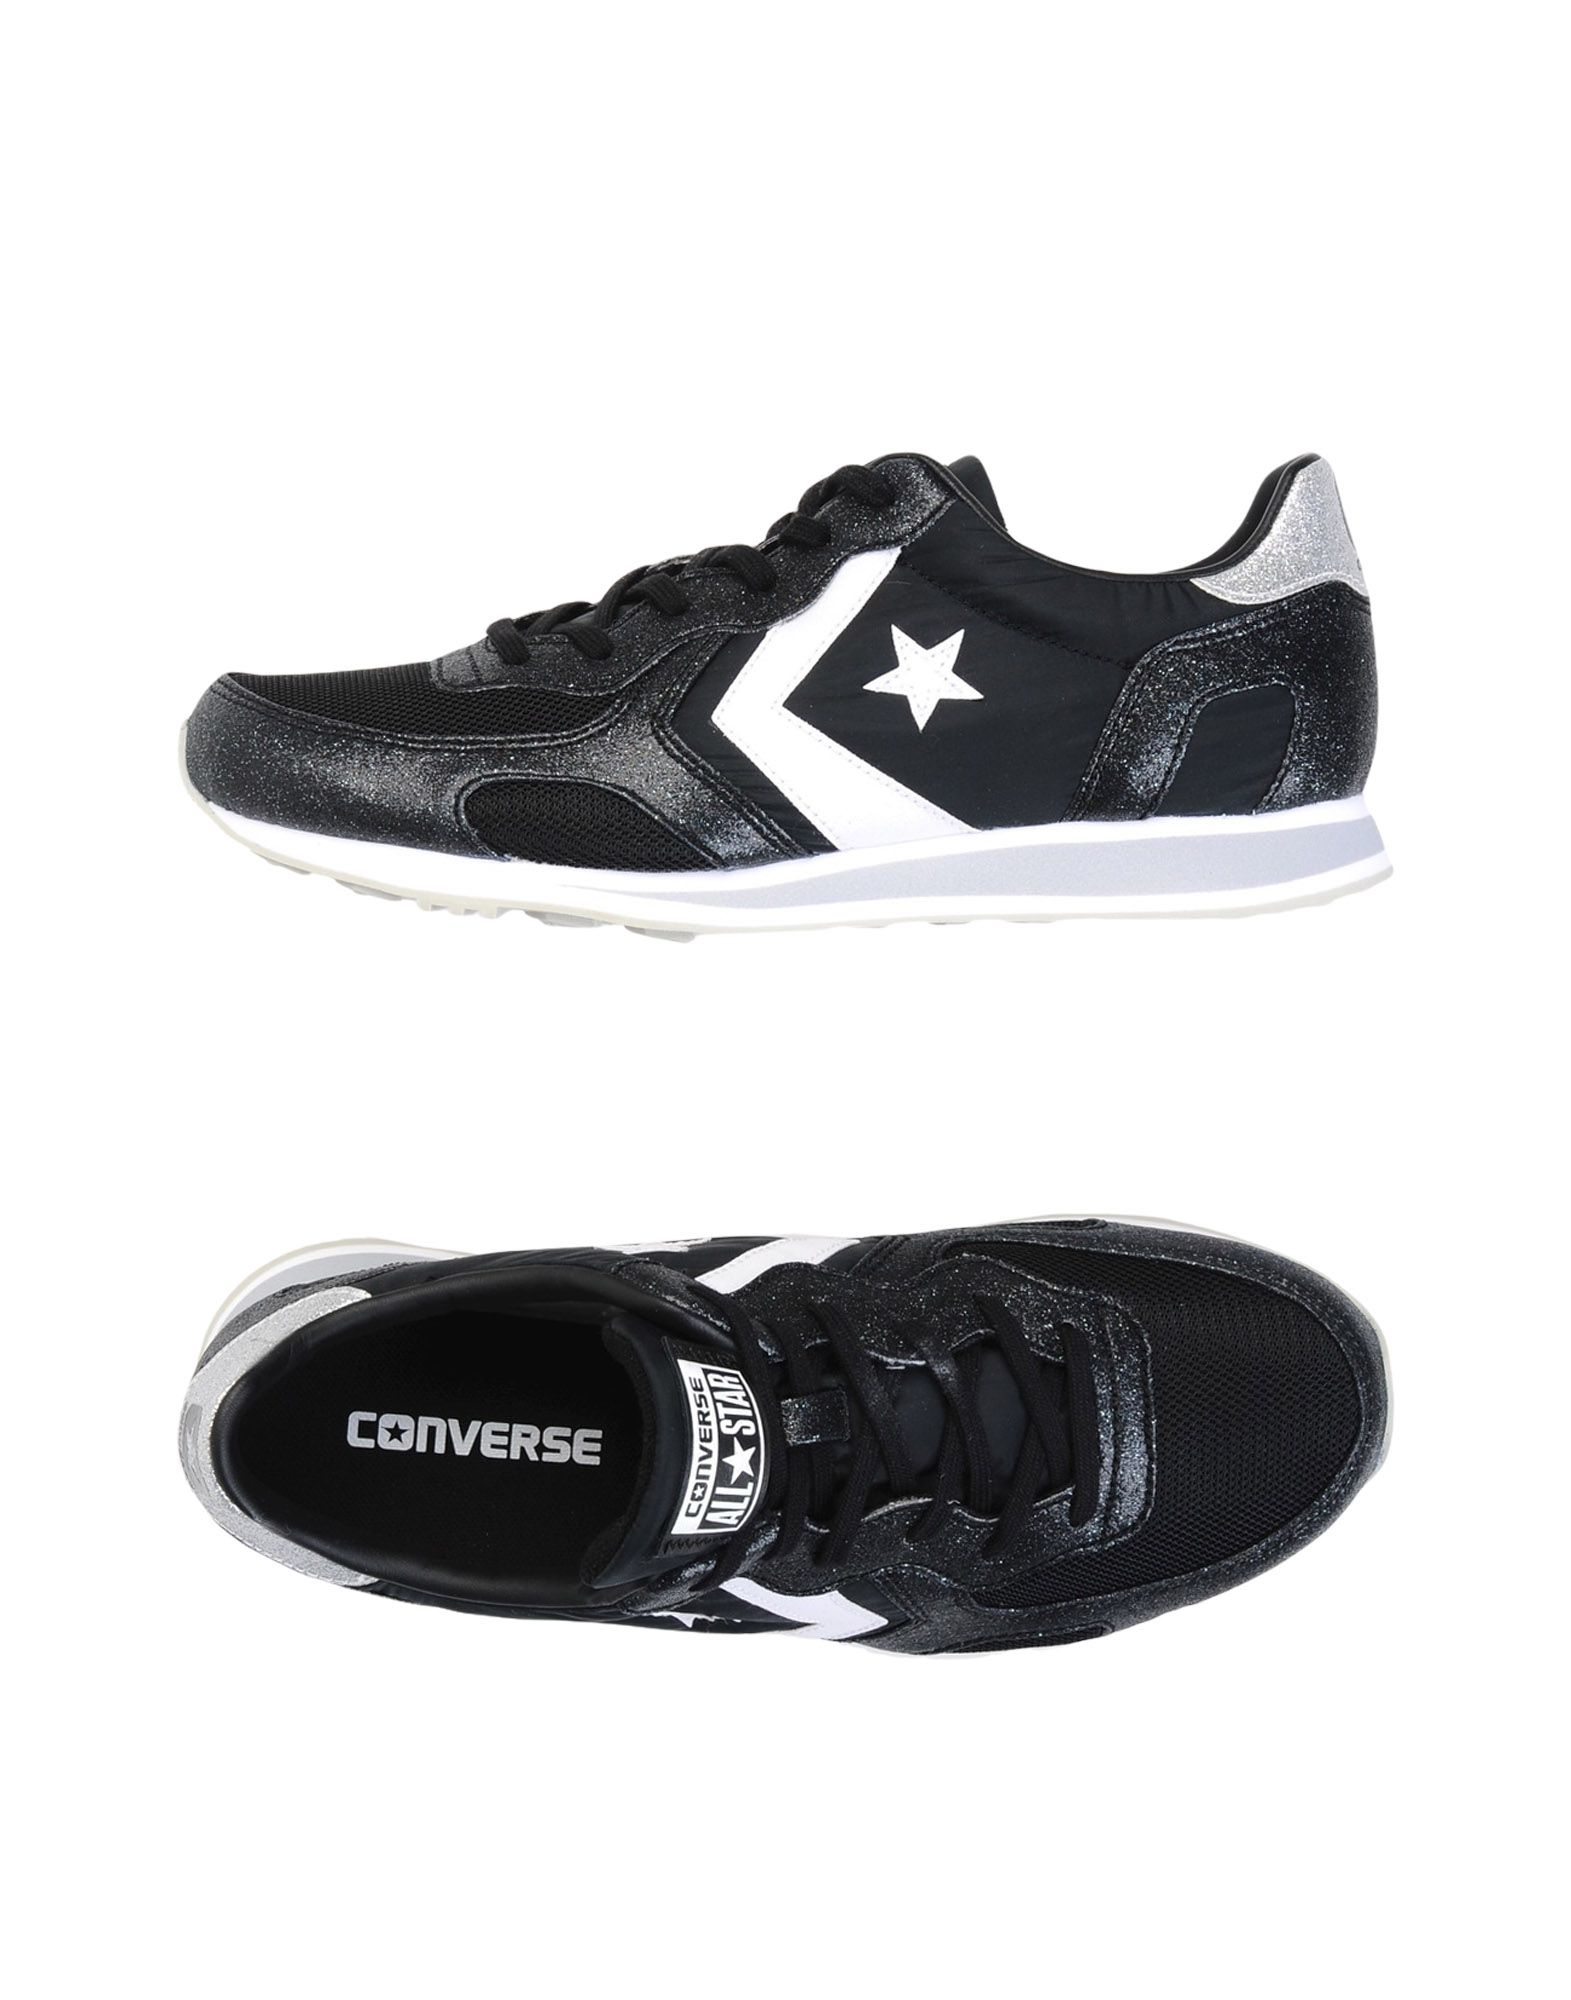 Sneakers Converse All Star Auckland Racer Glitter - Donna - 11461290HW